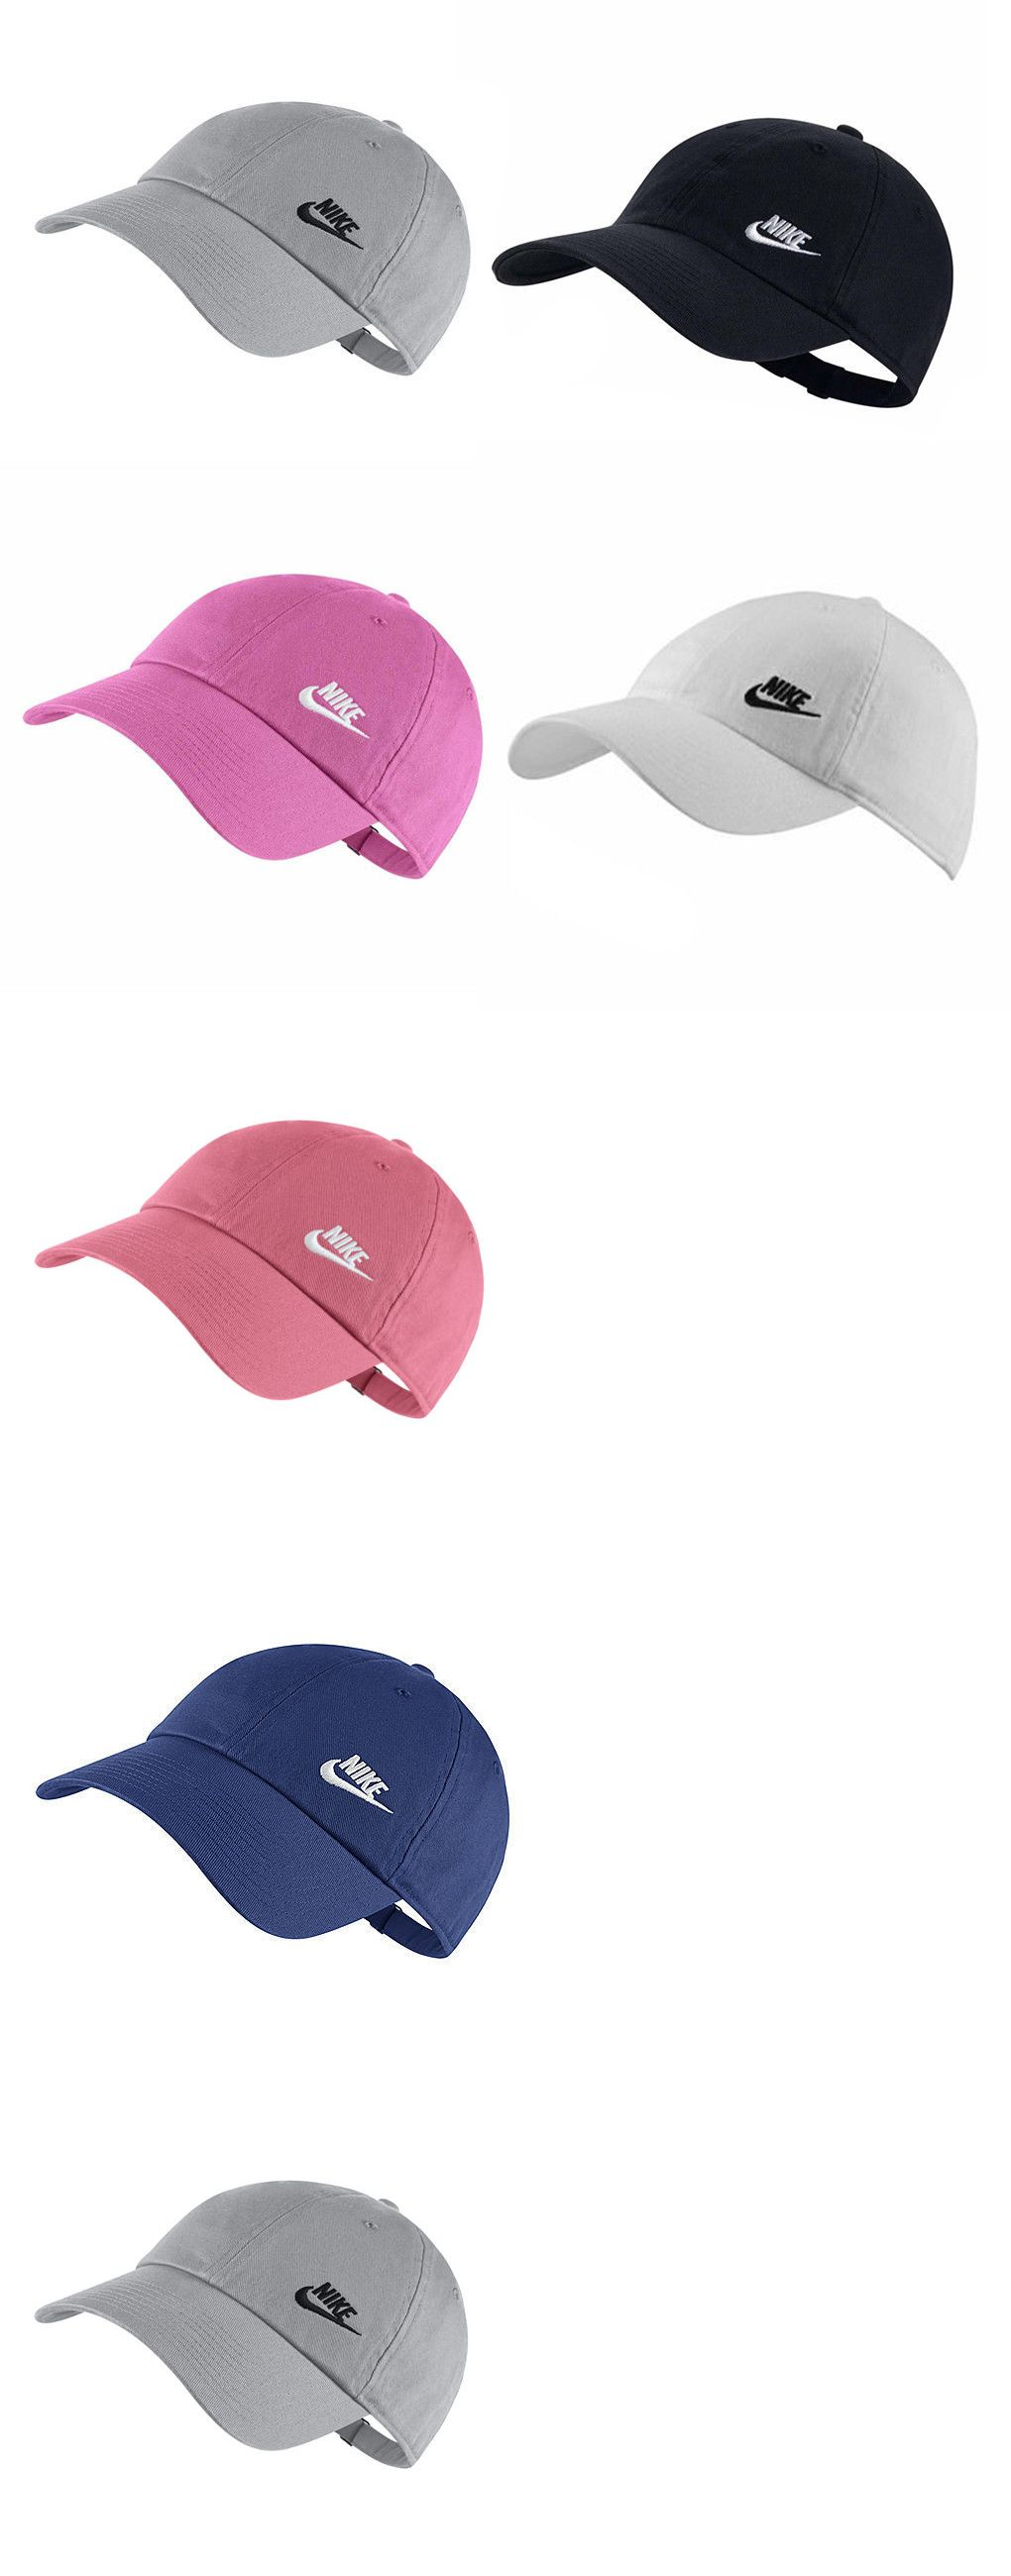 e0db0b85efe Hats 45230  Nike Heritage 86 Futura Women S Cap Hat New 6 Colors Adjustable  Classic H86 -  BUY IT NOW ONLY   22.99 on eBay!